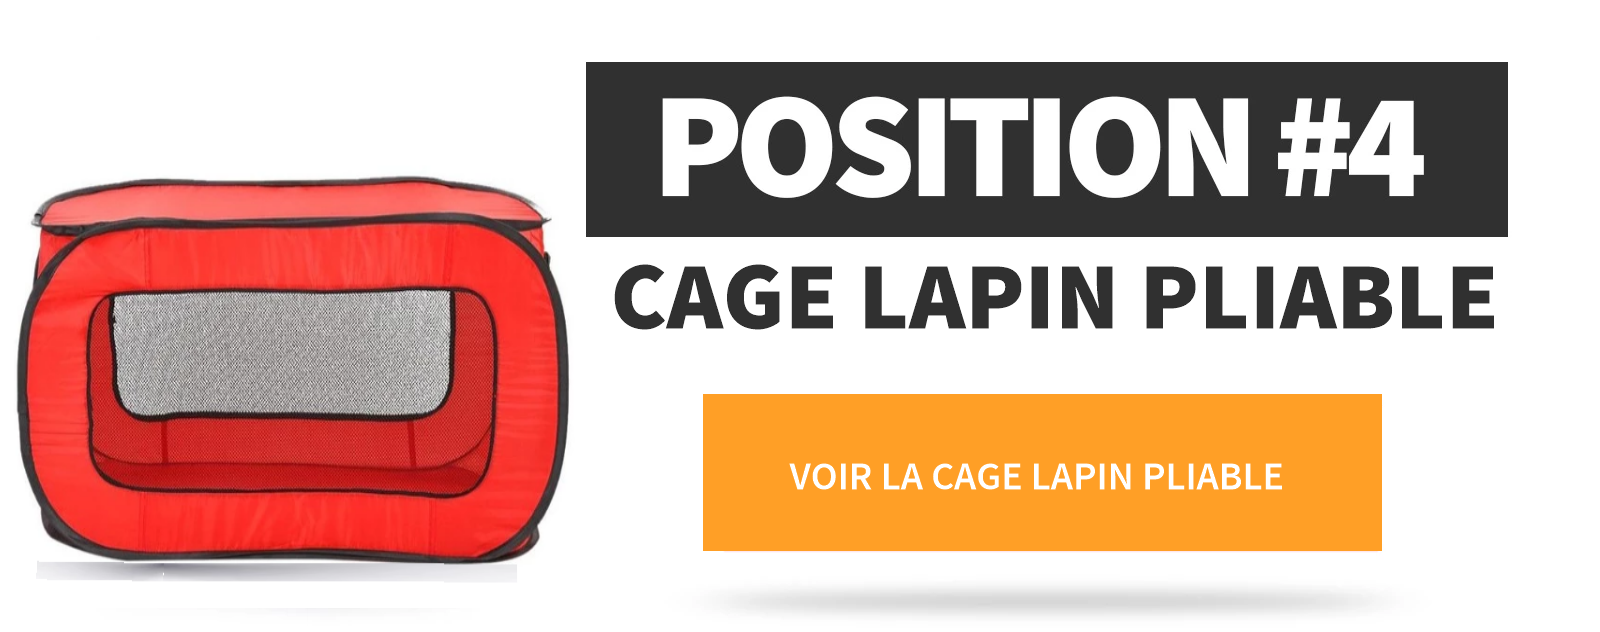 cage lapin pliable